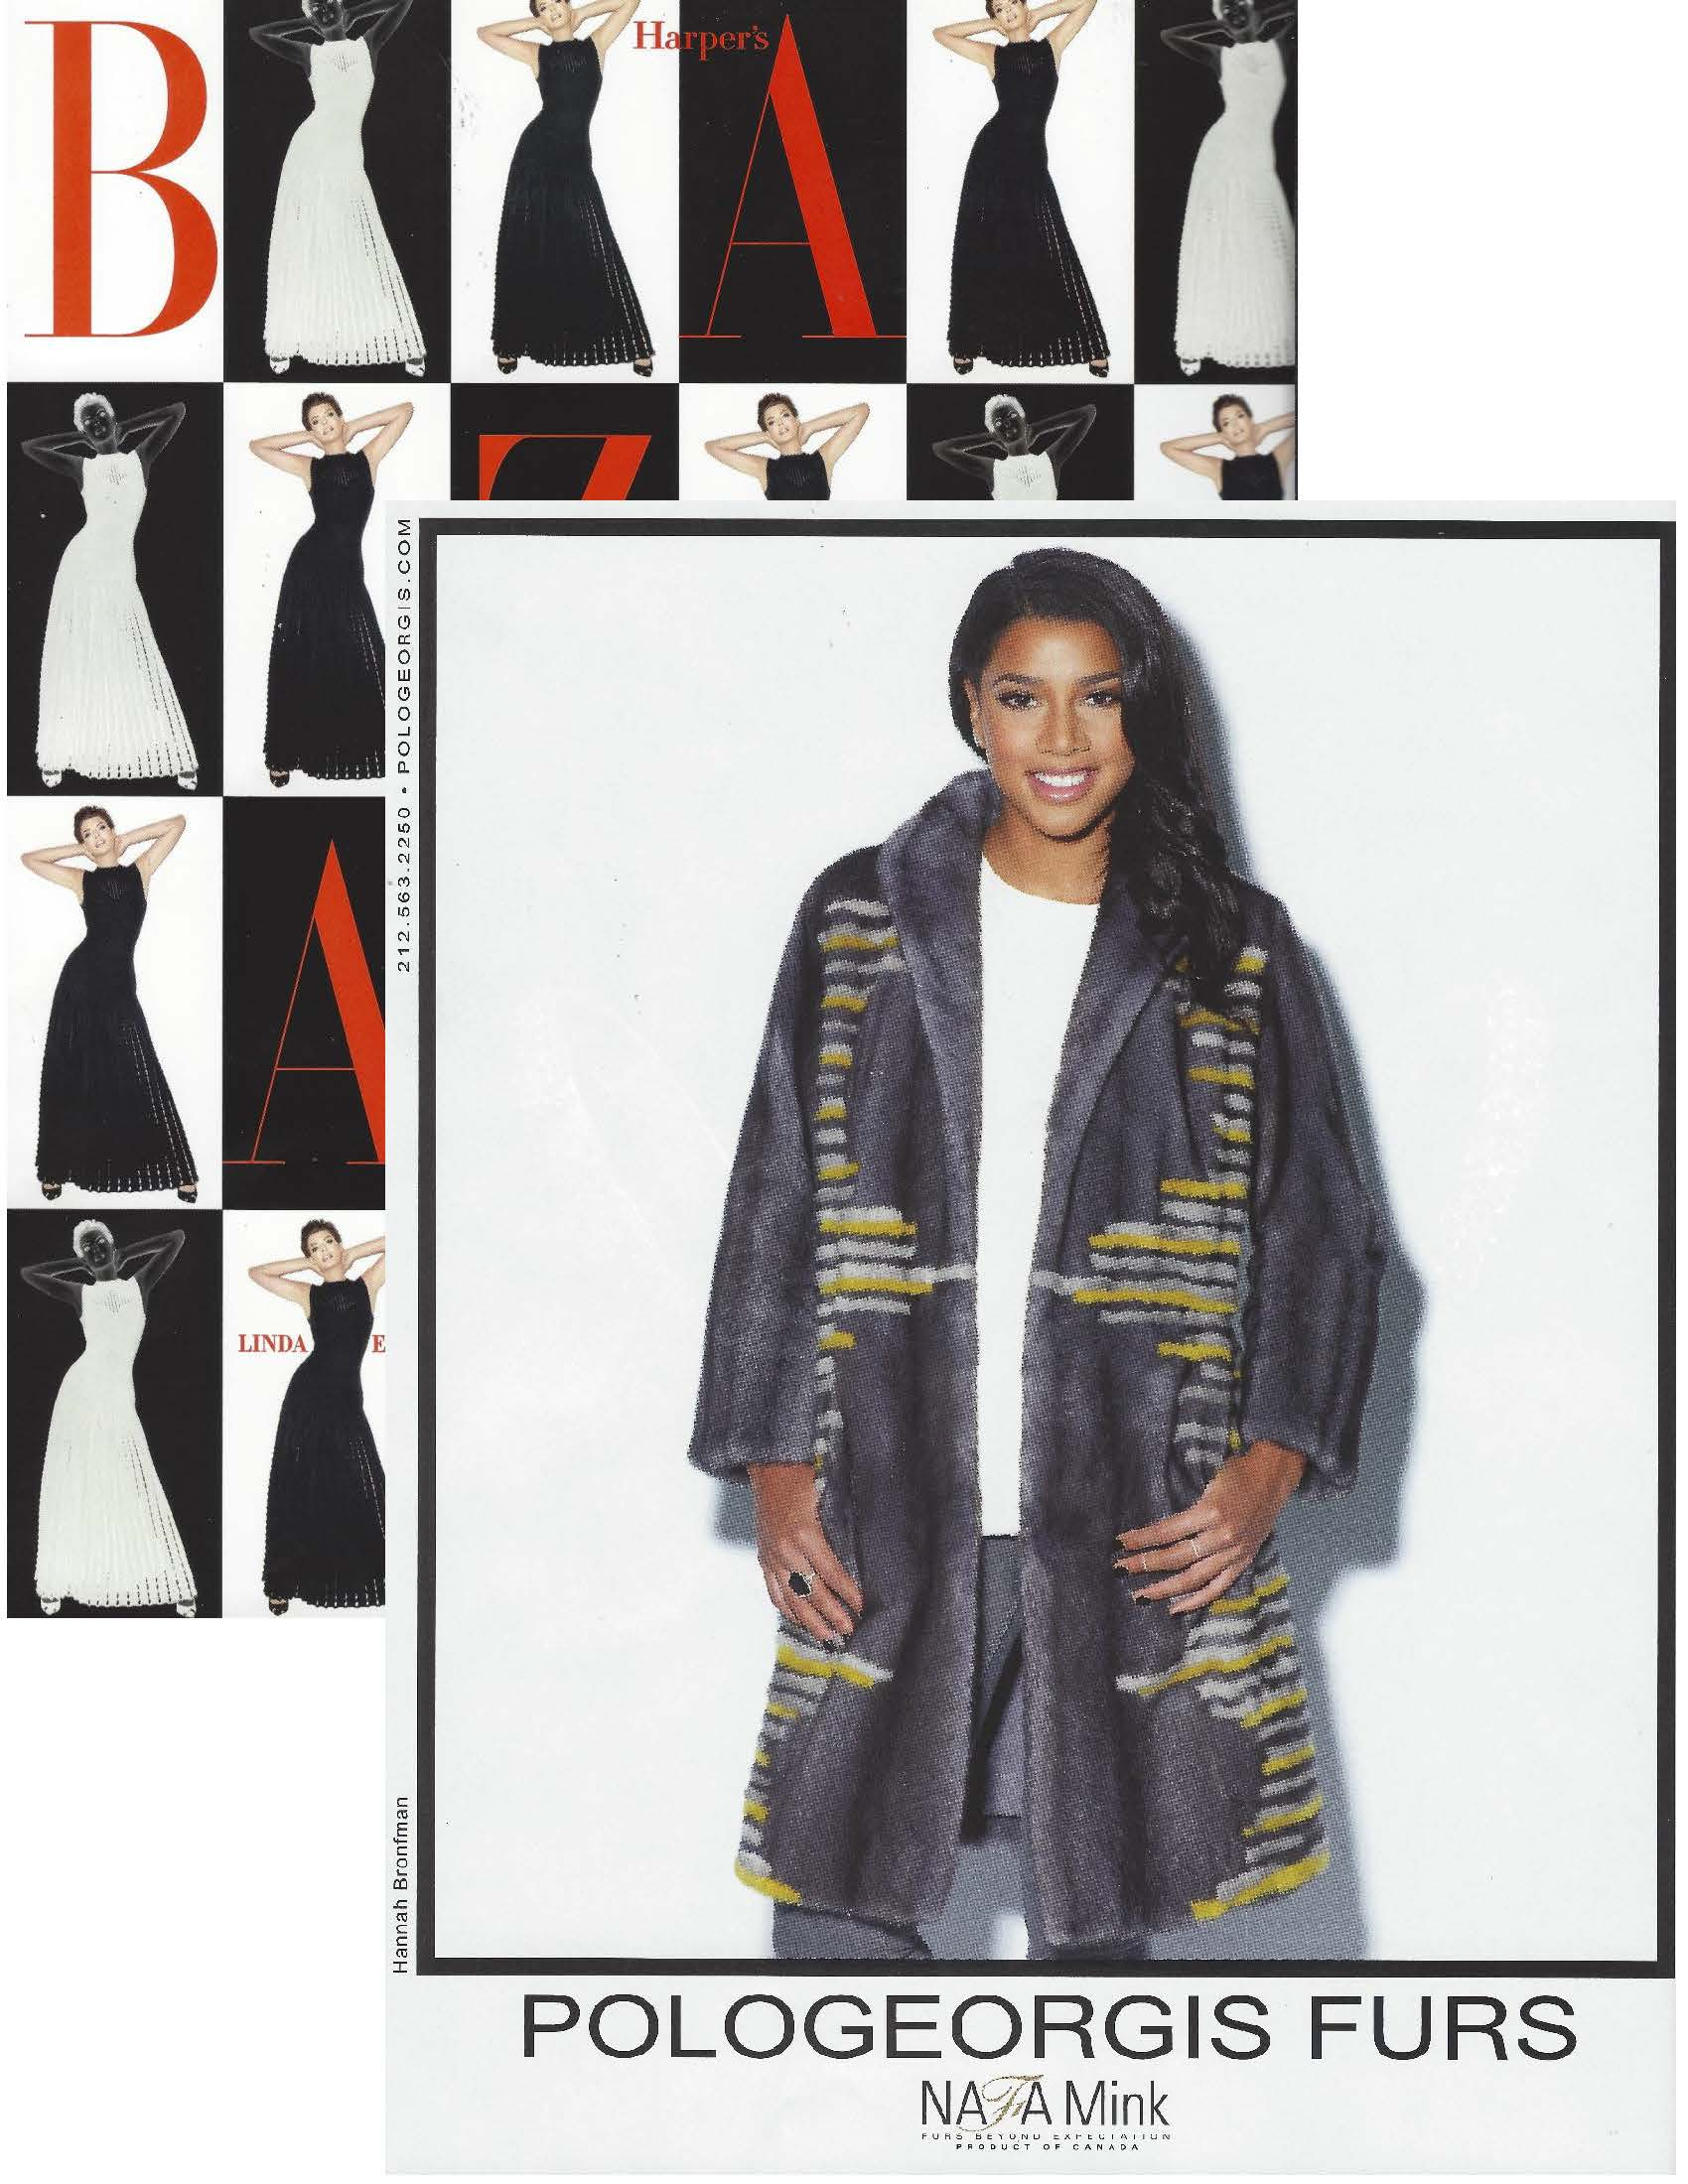 harpers-bazaar-october-2013-pologeorgis-blue-iris-mink-coat-with-inserts-featured-in-ad-for-nafa-mink